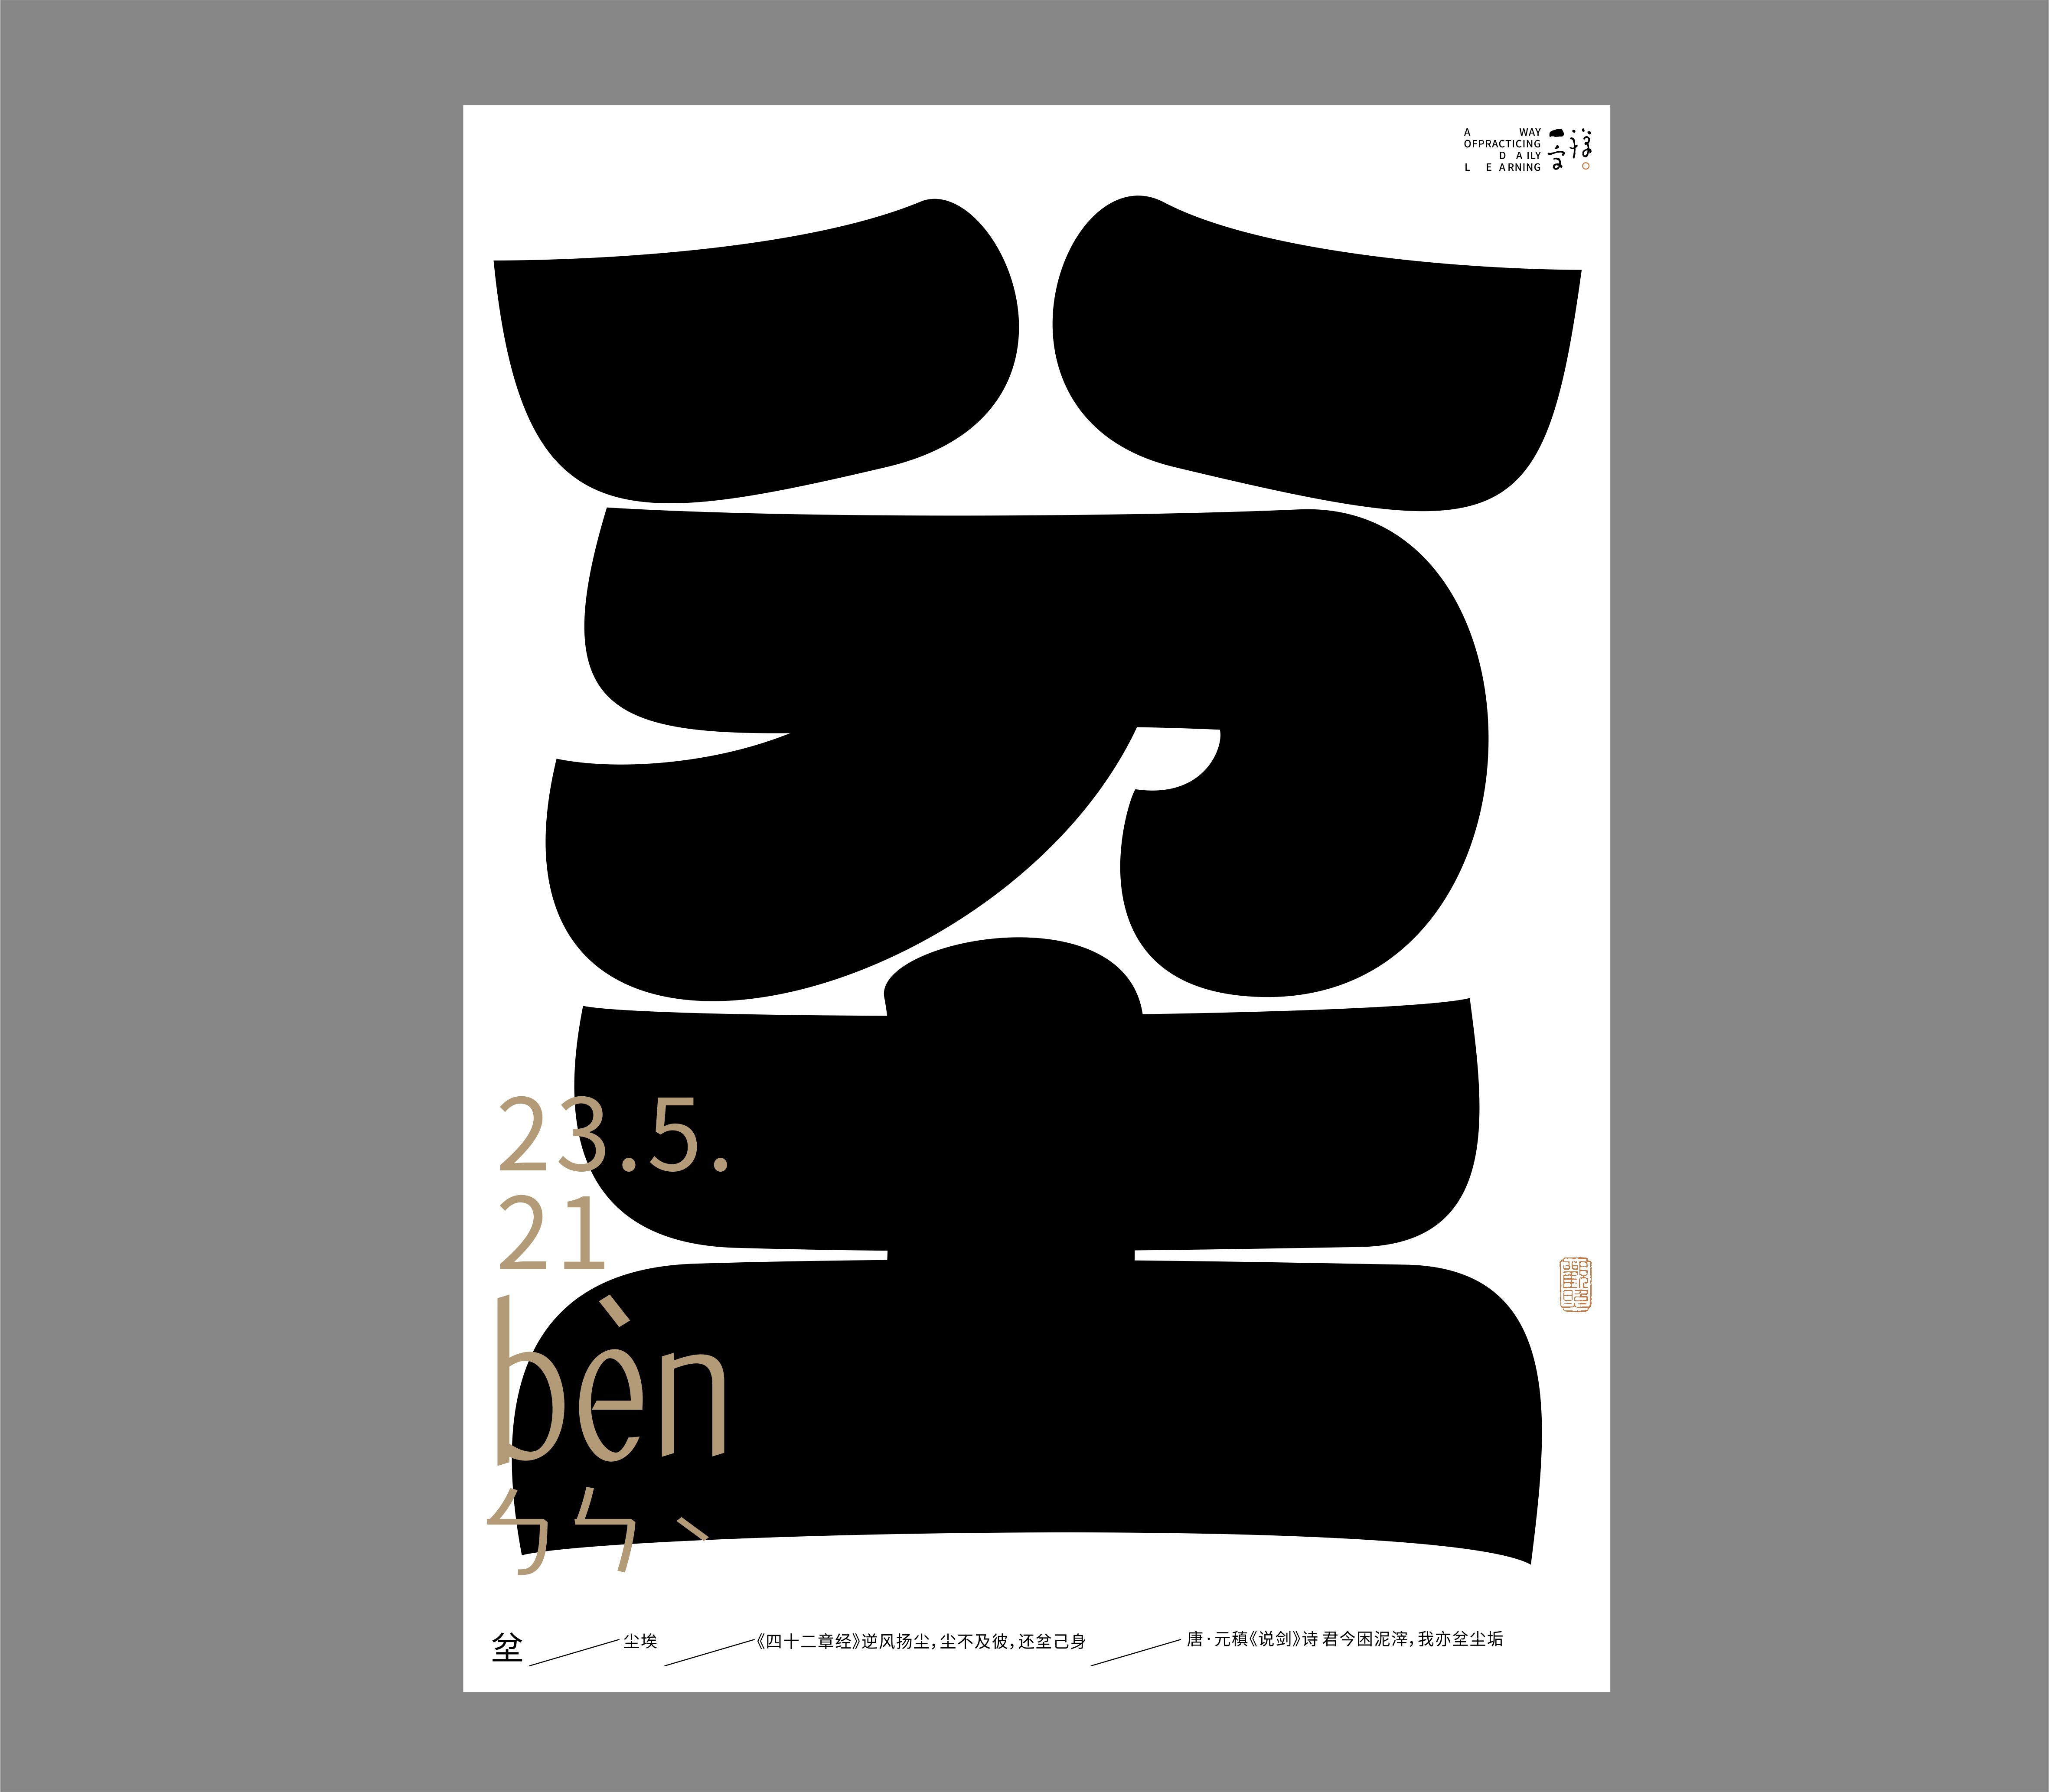 30P Collection of the latest Chinese font design schemes in 2021 #.146